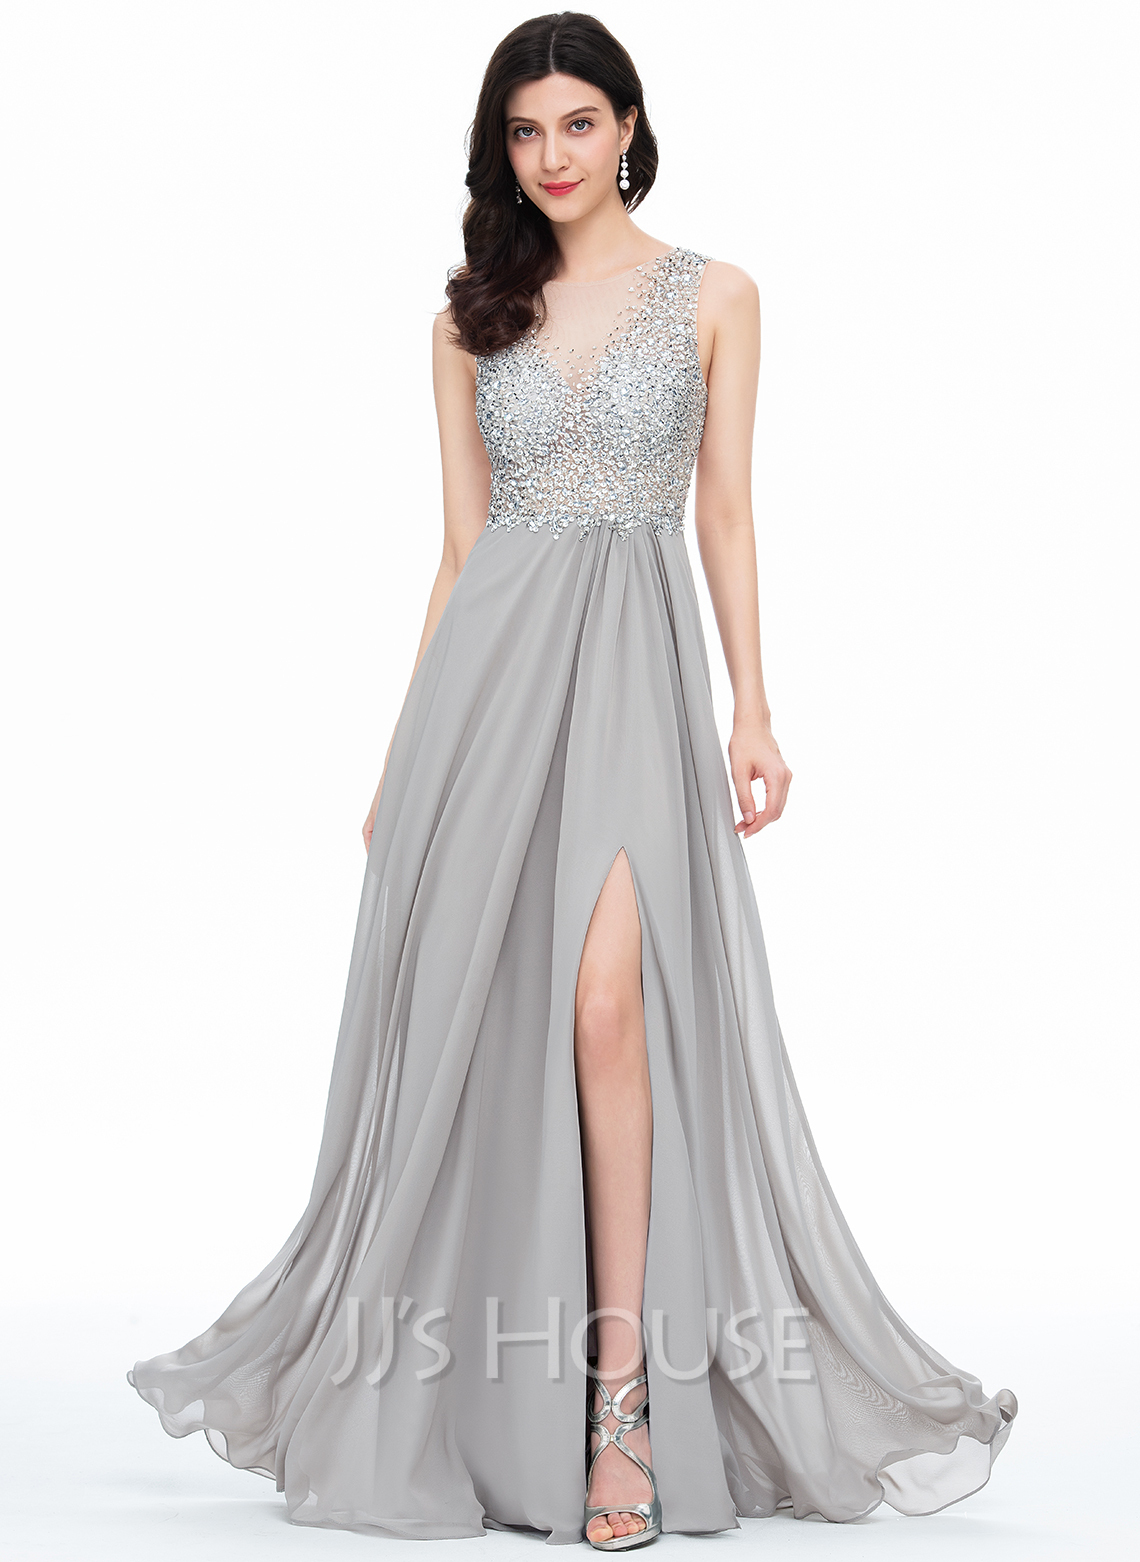 307ccd09df4 A-Line Princess Scoop Neck Floor-Length Chiffon Prom Dresses With Beading  Sequins. Loading zoom